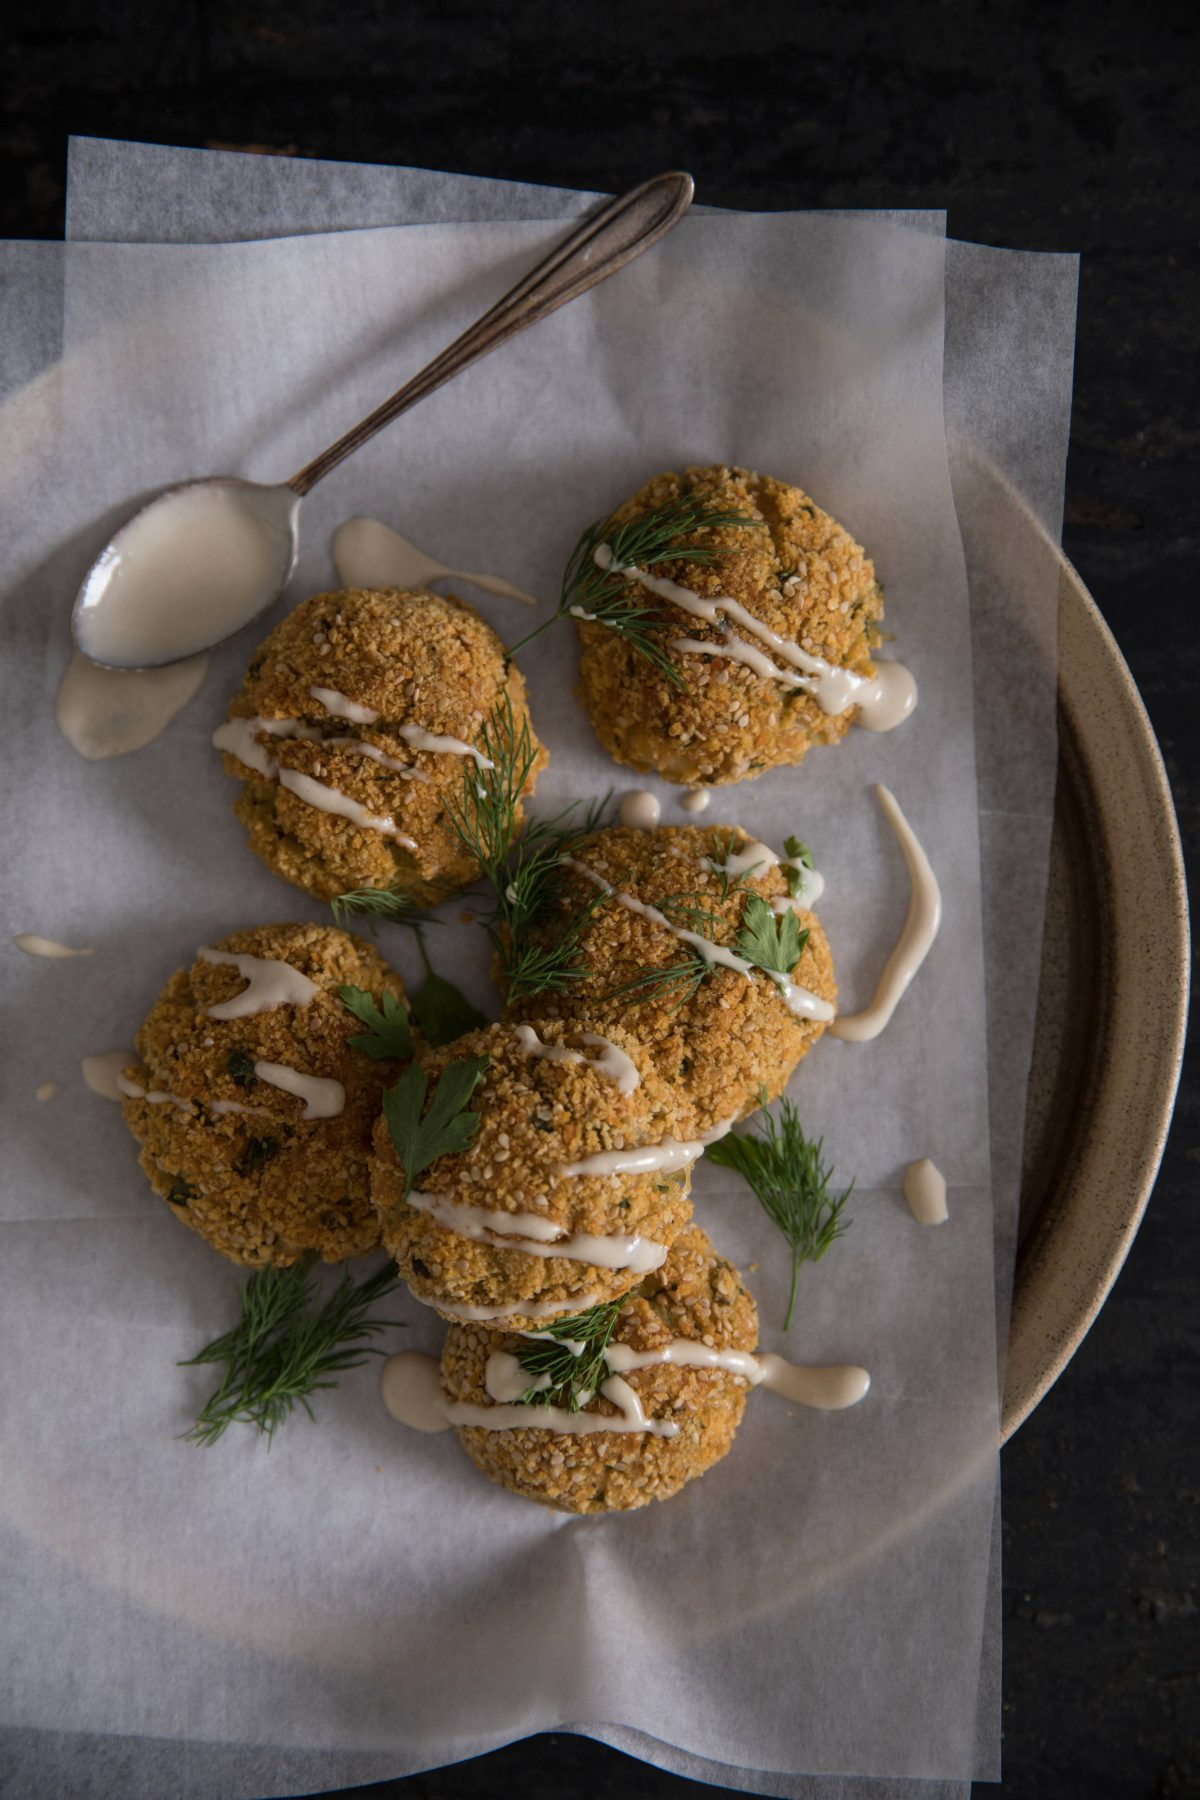 Double Baked Lentil and Feta Falafel Balls